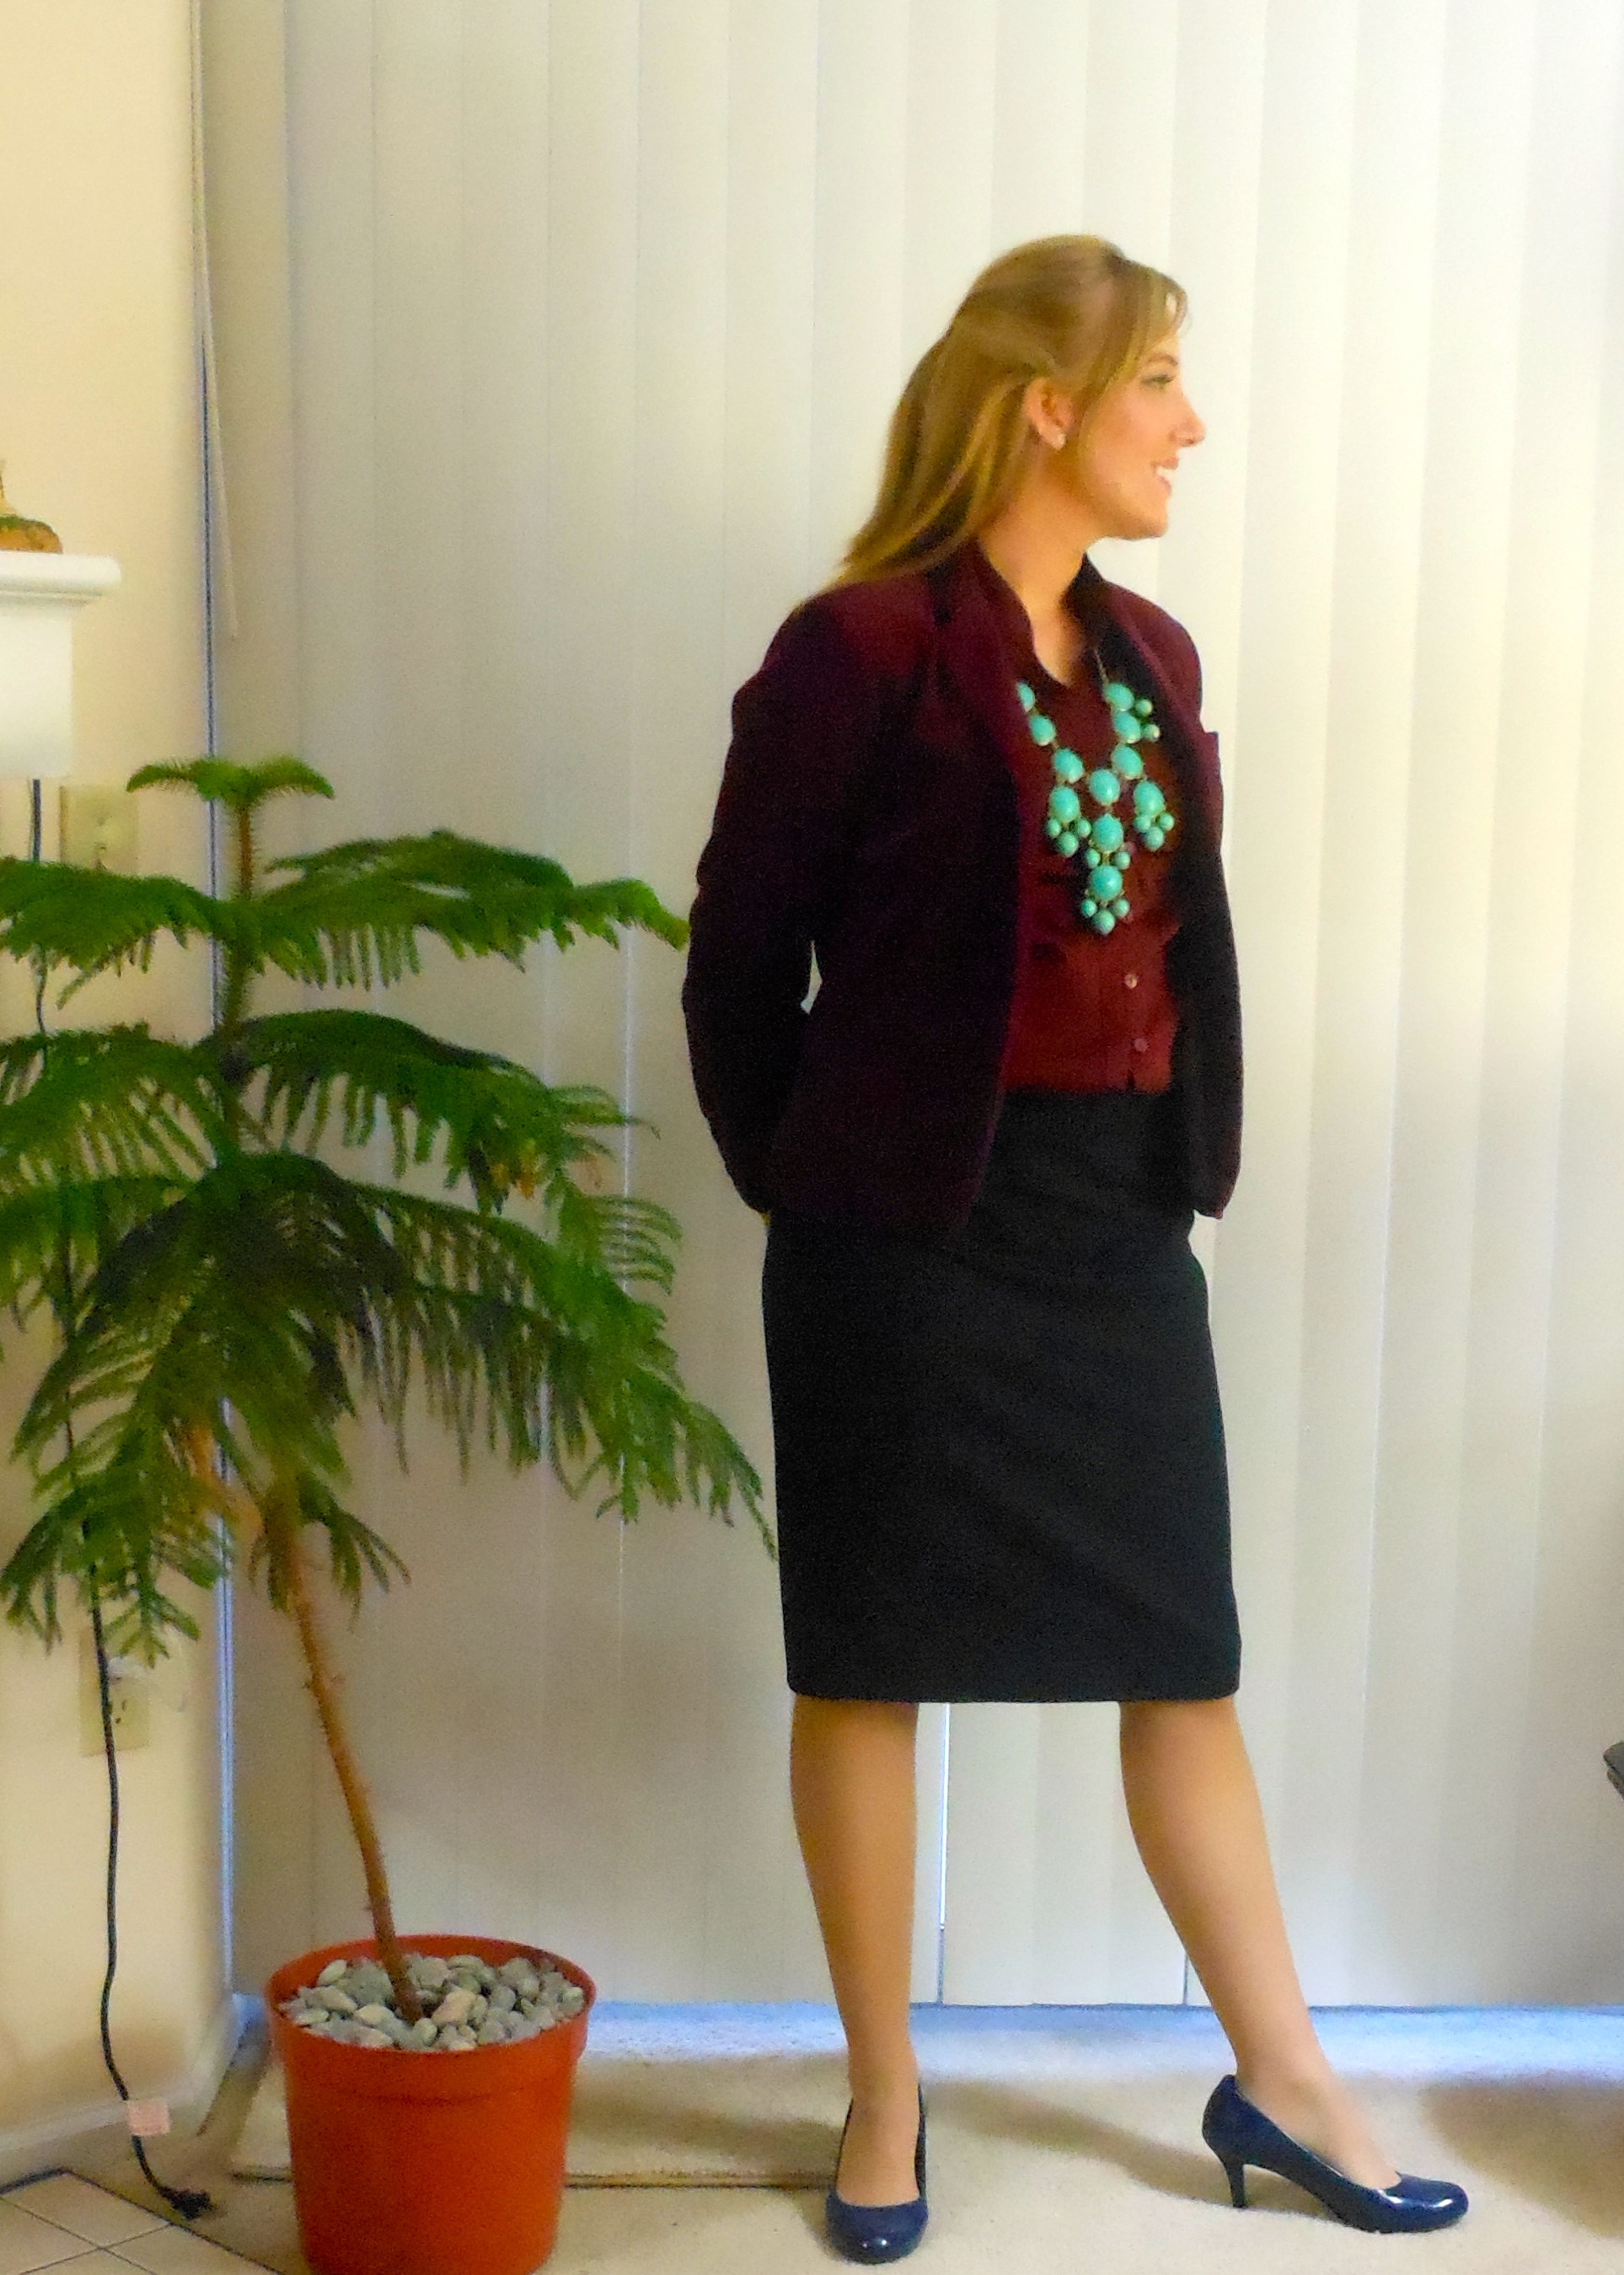 4853310a04cf Burgundy velvet blazer  (thrifted.) Turquoise bubble necklace  Ebay.  Burgundy tie-neck button-up  JCP. Navy skirt  Target. Navy pumps  Payless.